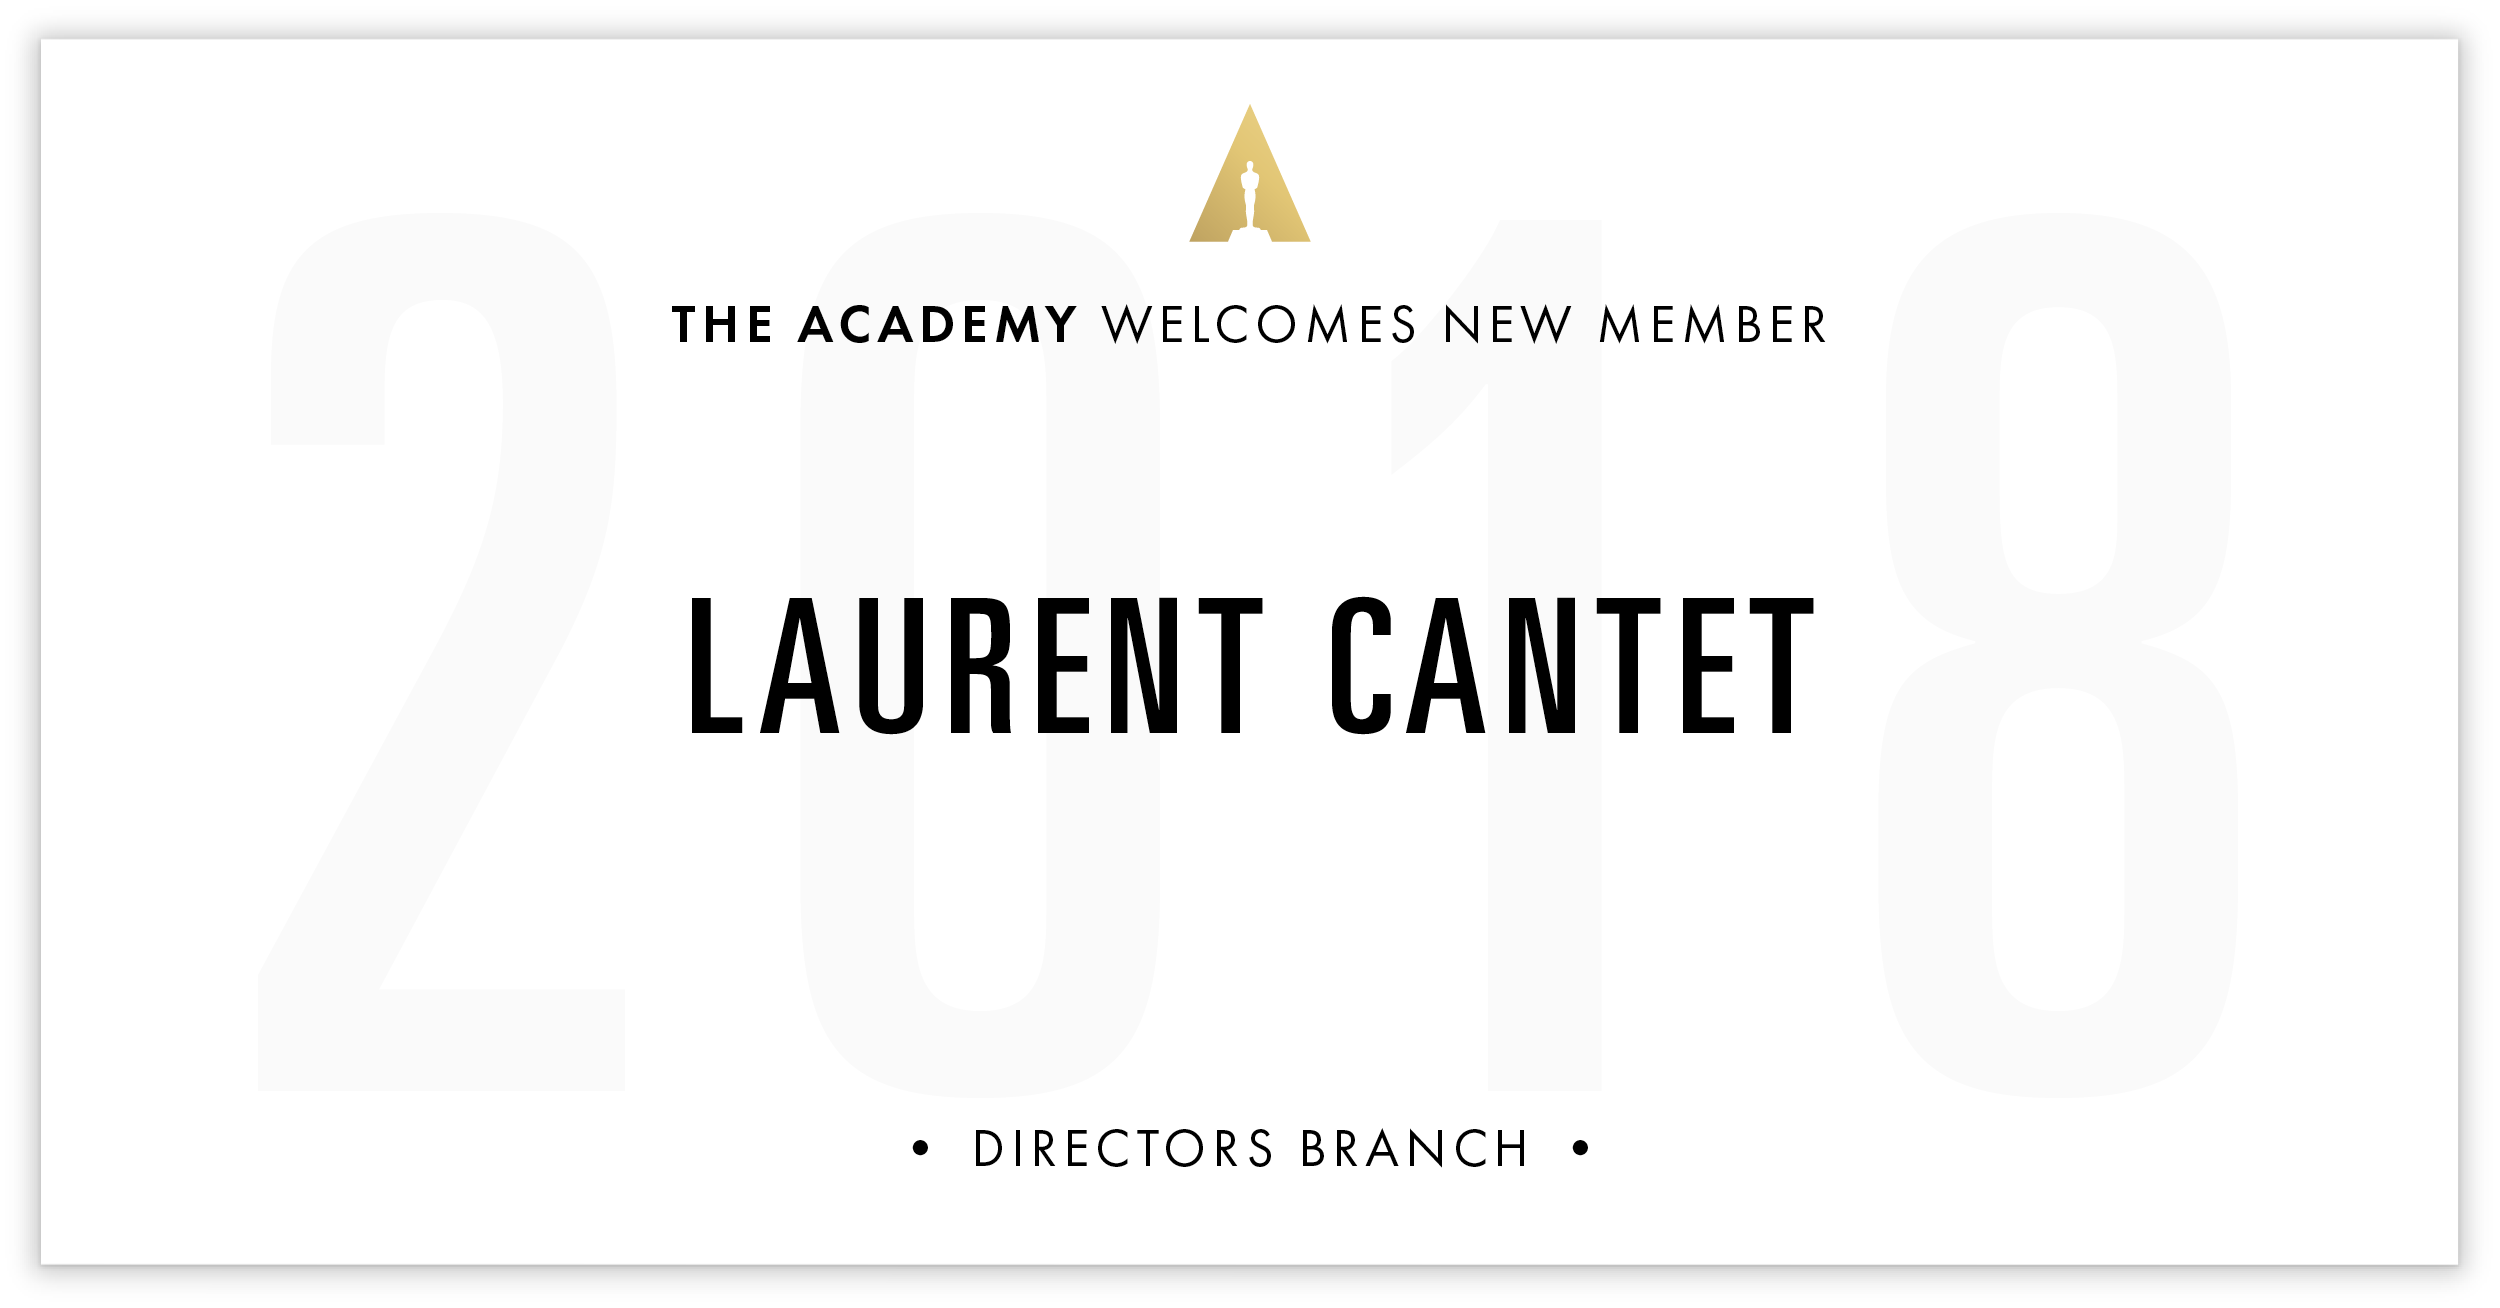 Laurent Cantet is invited!